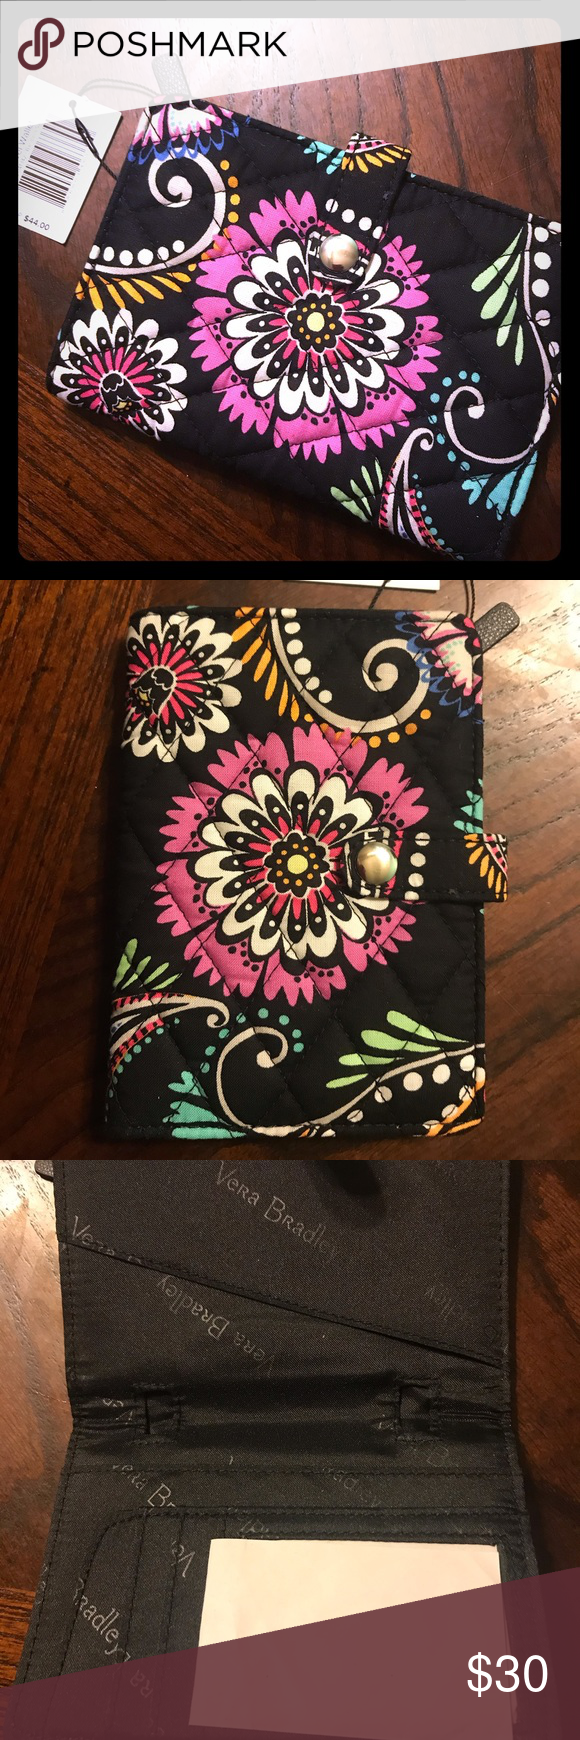 Vera Bradley Travel Wallet NWT I just added this listing on Poshmark: Vera Bradley Travel Wallet. Bradley